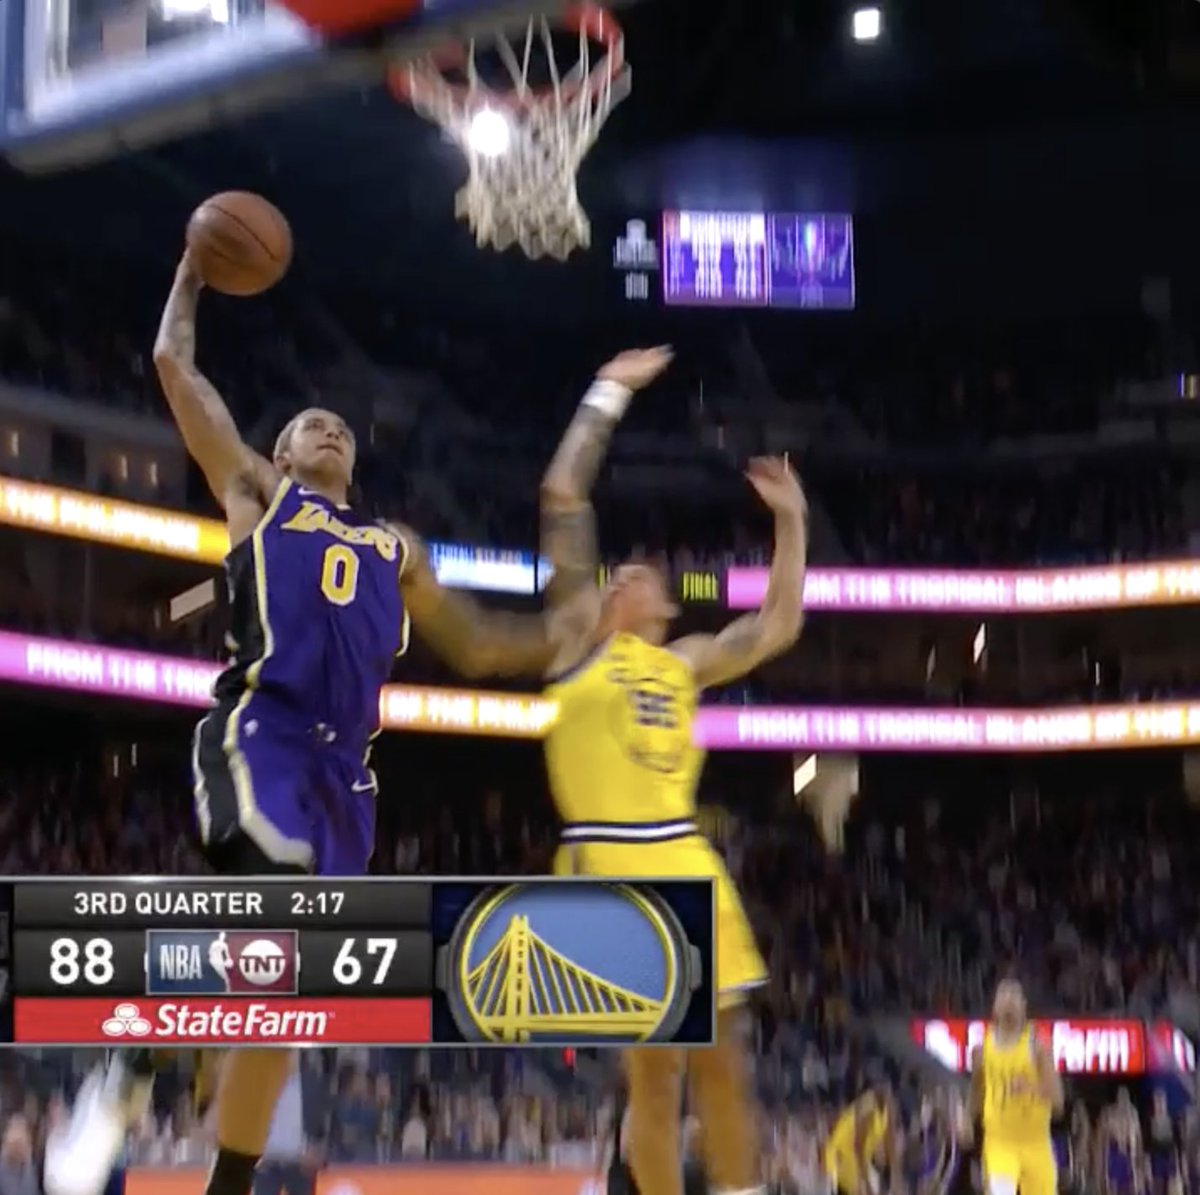 AD with the hustle. Kuz with the hammer. 🔥